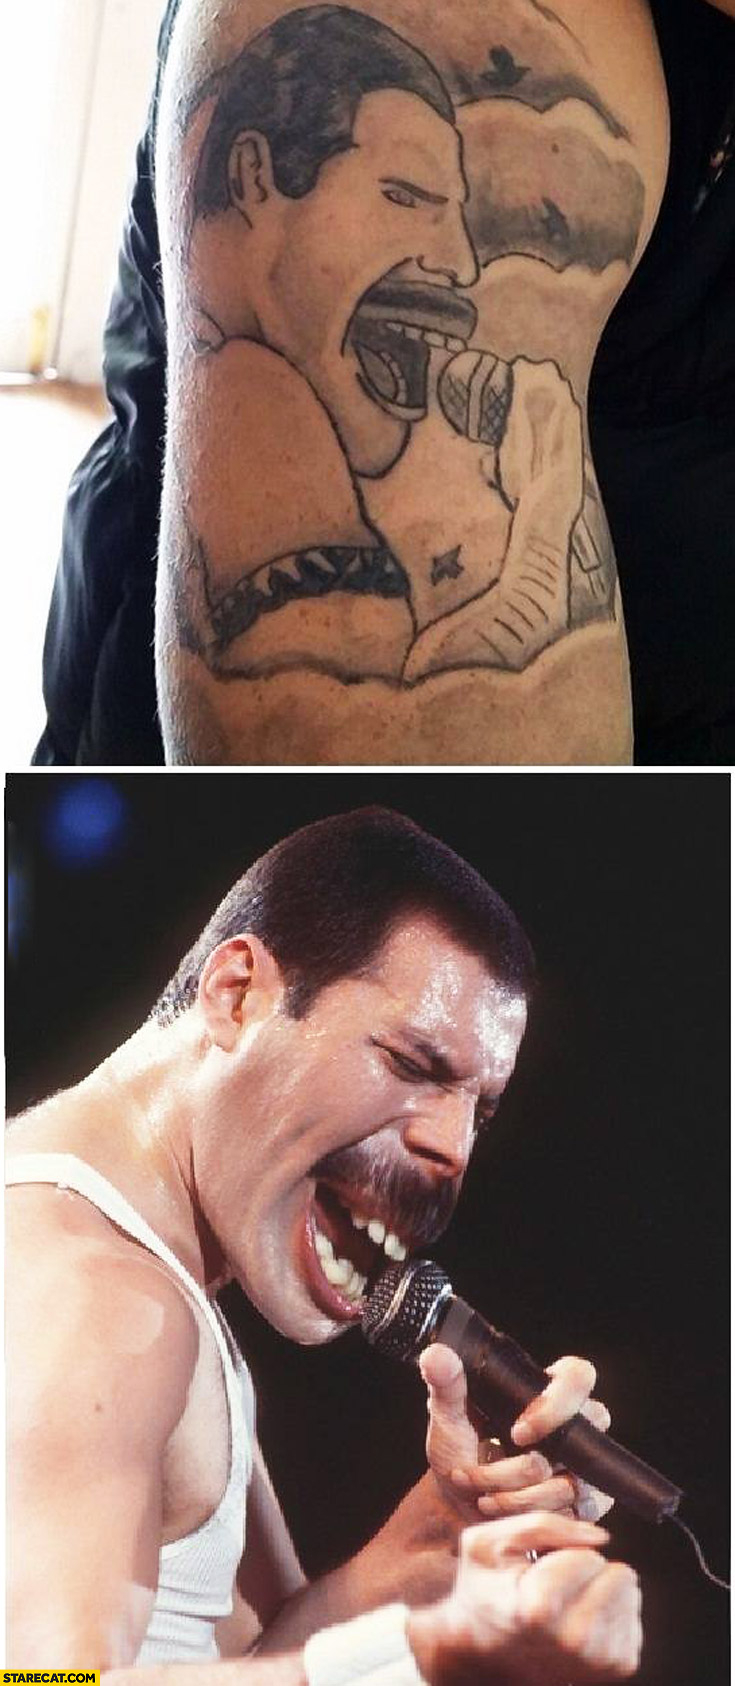 Freddie Mercury tattoo fail